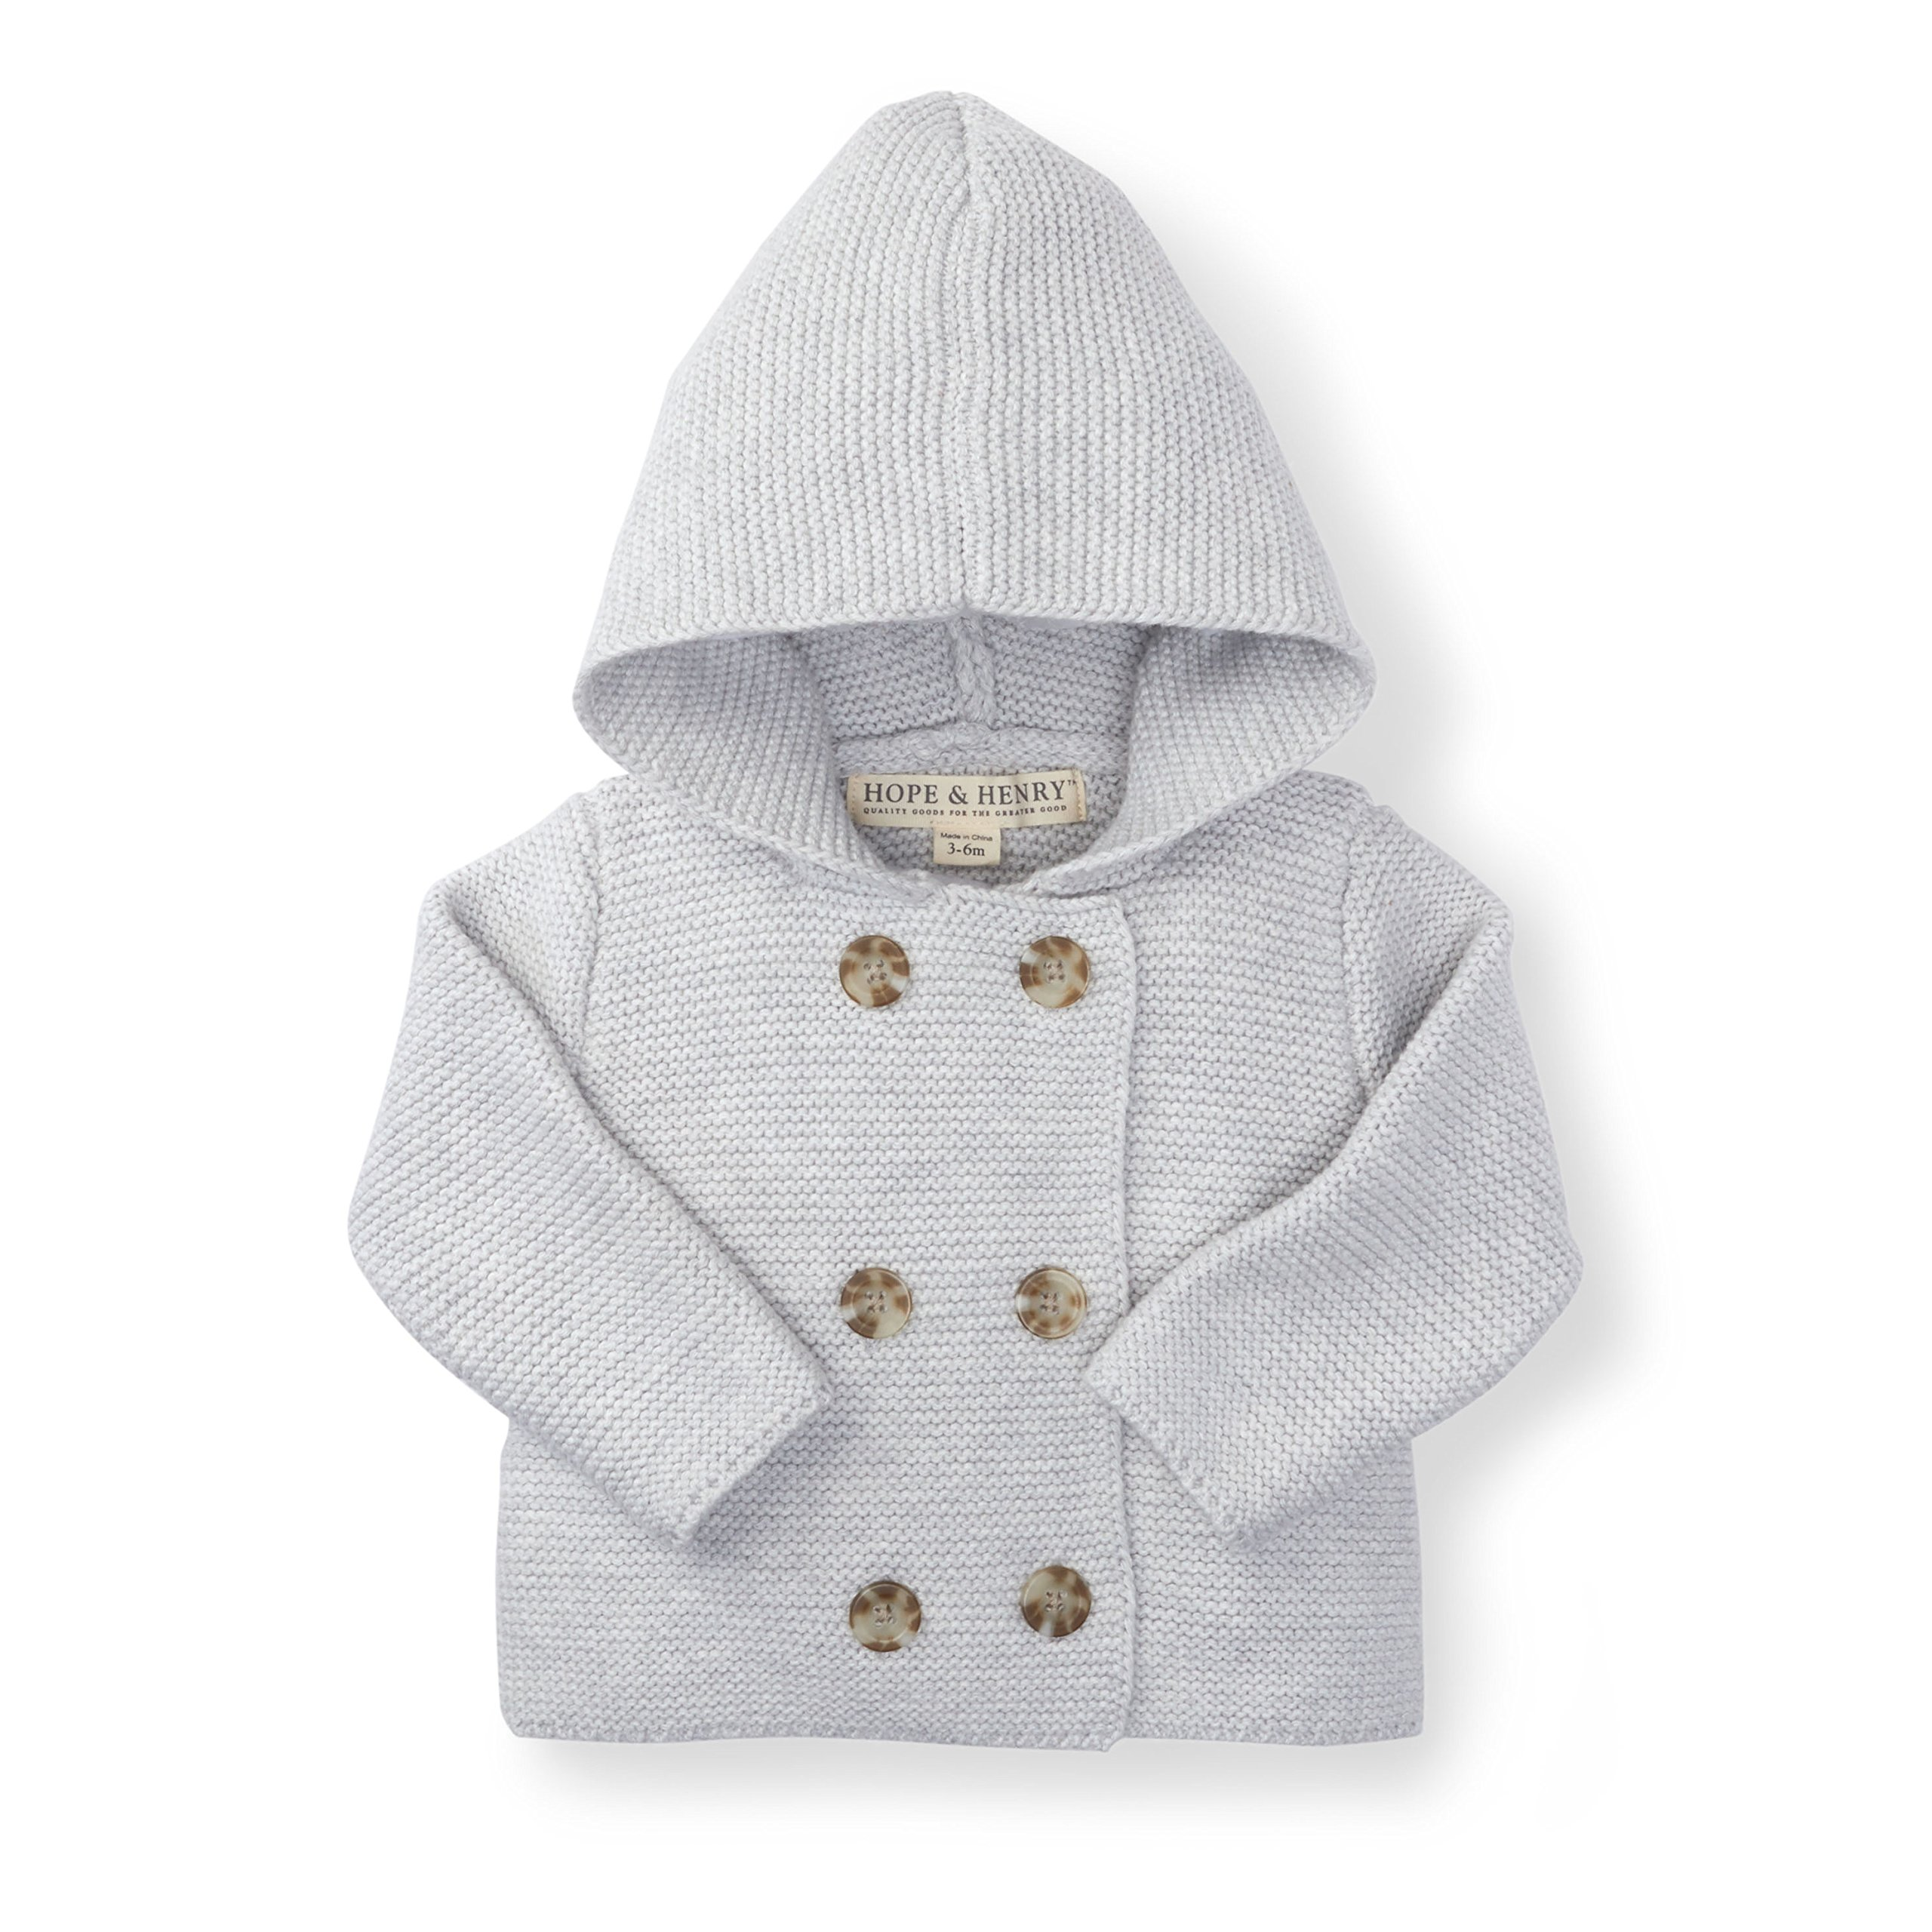 Hope & Henry Layette Grey Baby Sweater by Hope & Henry